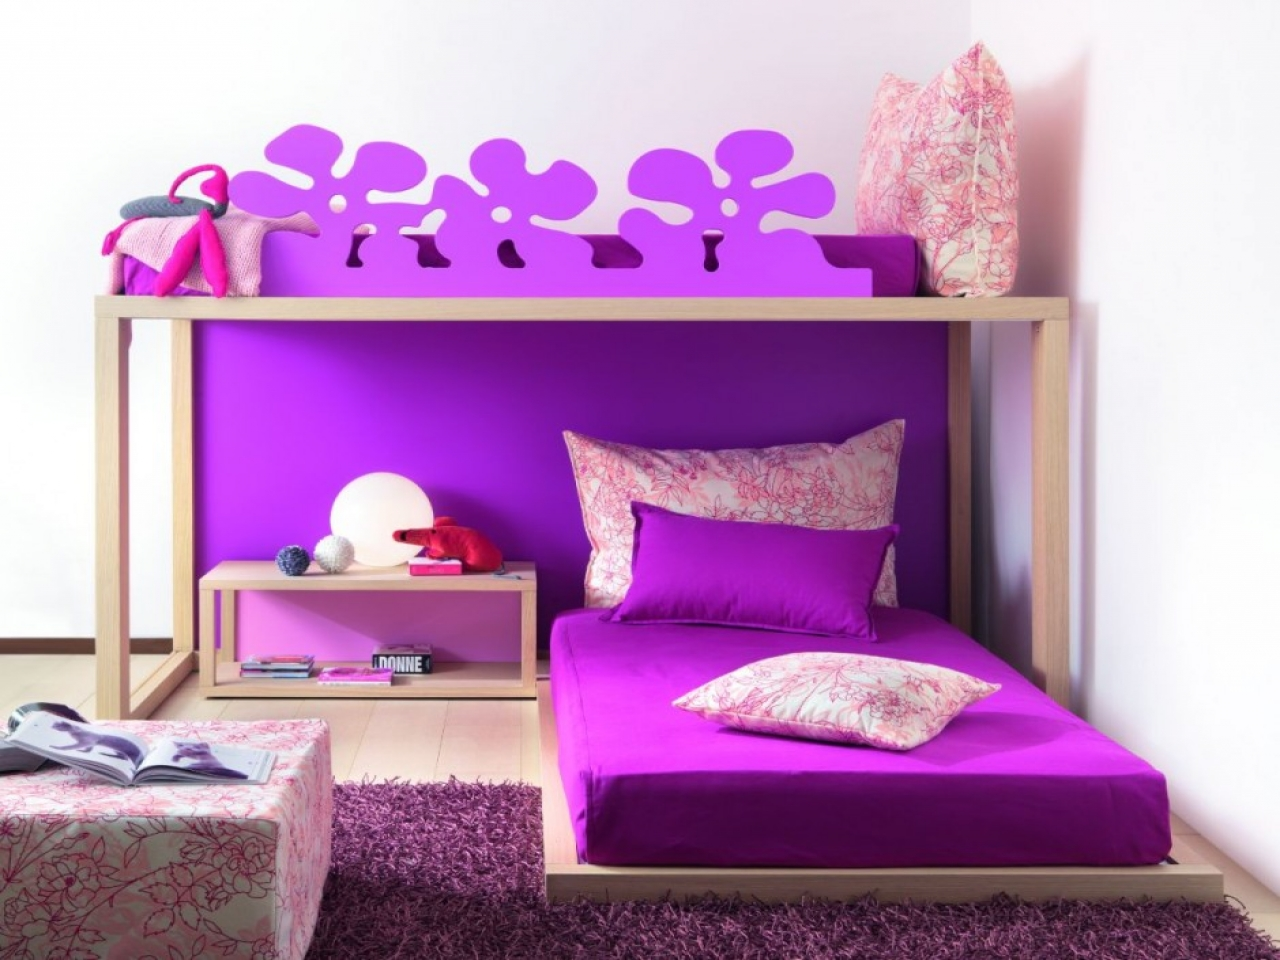 purple girls bedroom ideas blue girls bedroom ideas 6770e03debf662ec